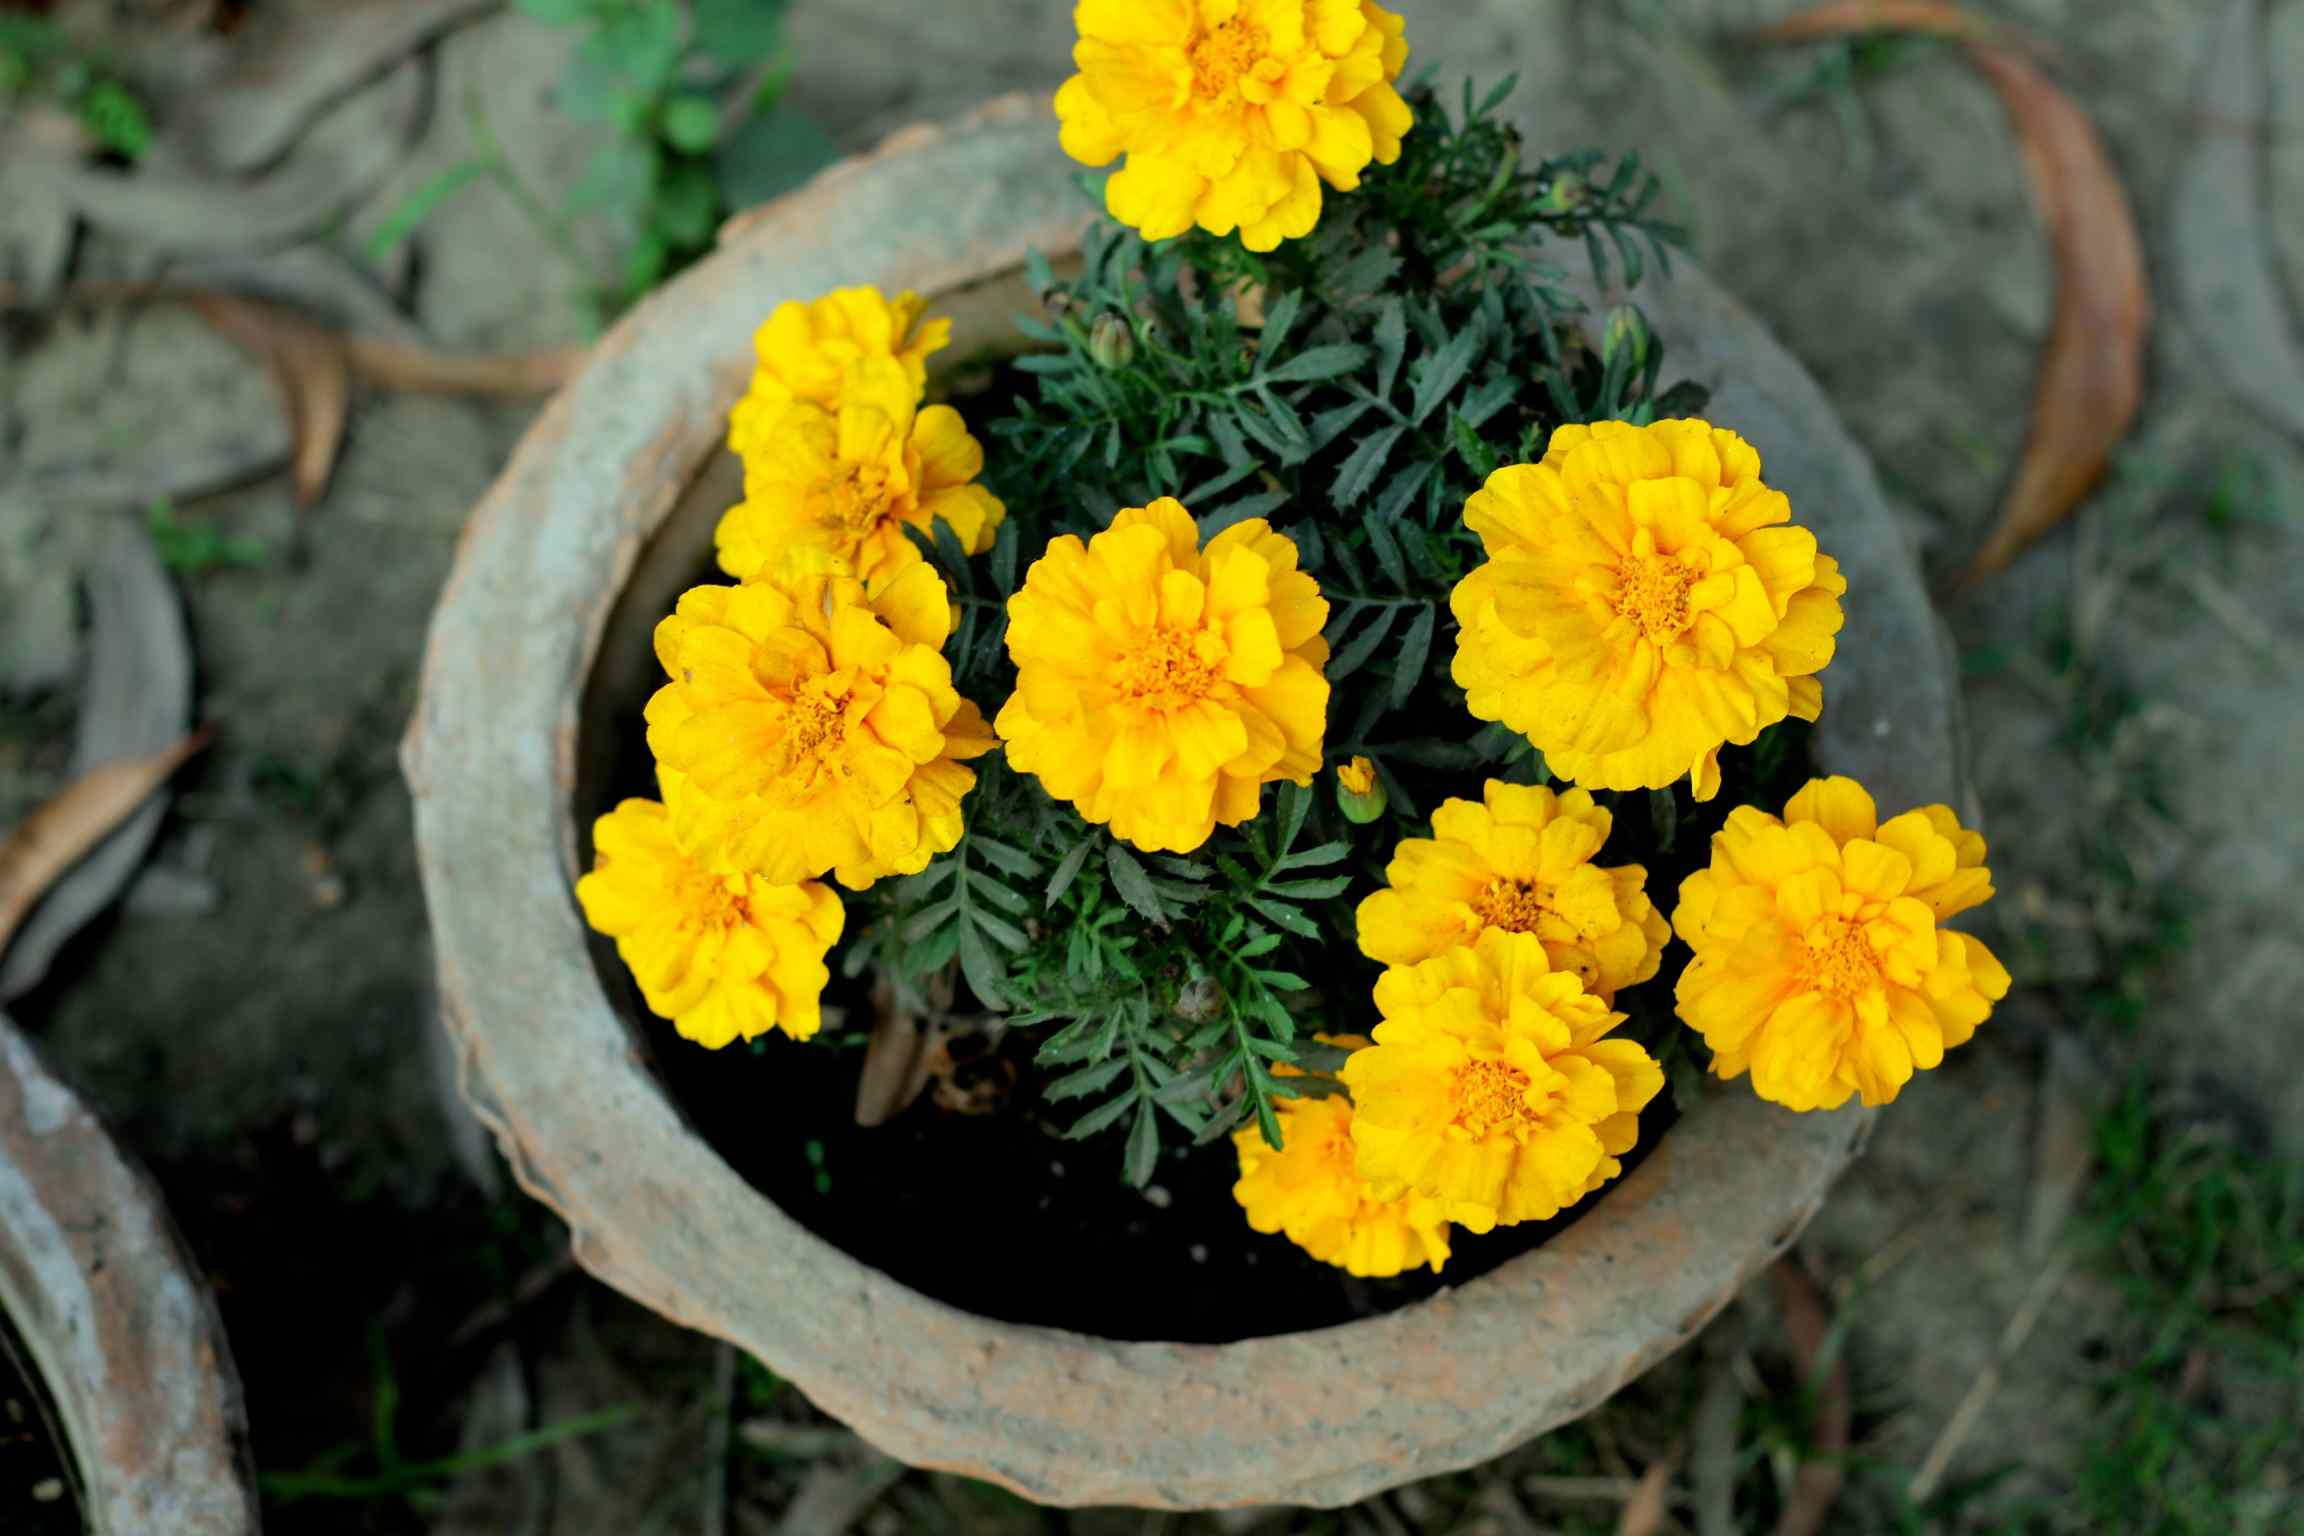 Yellow marigolds in container.